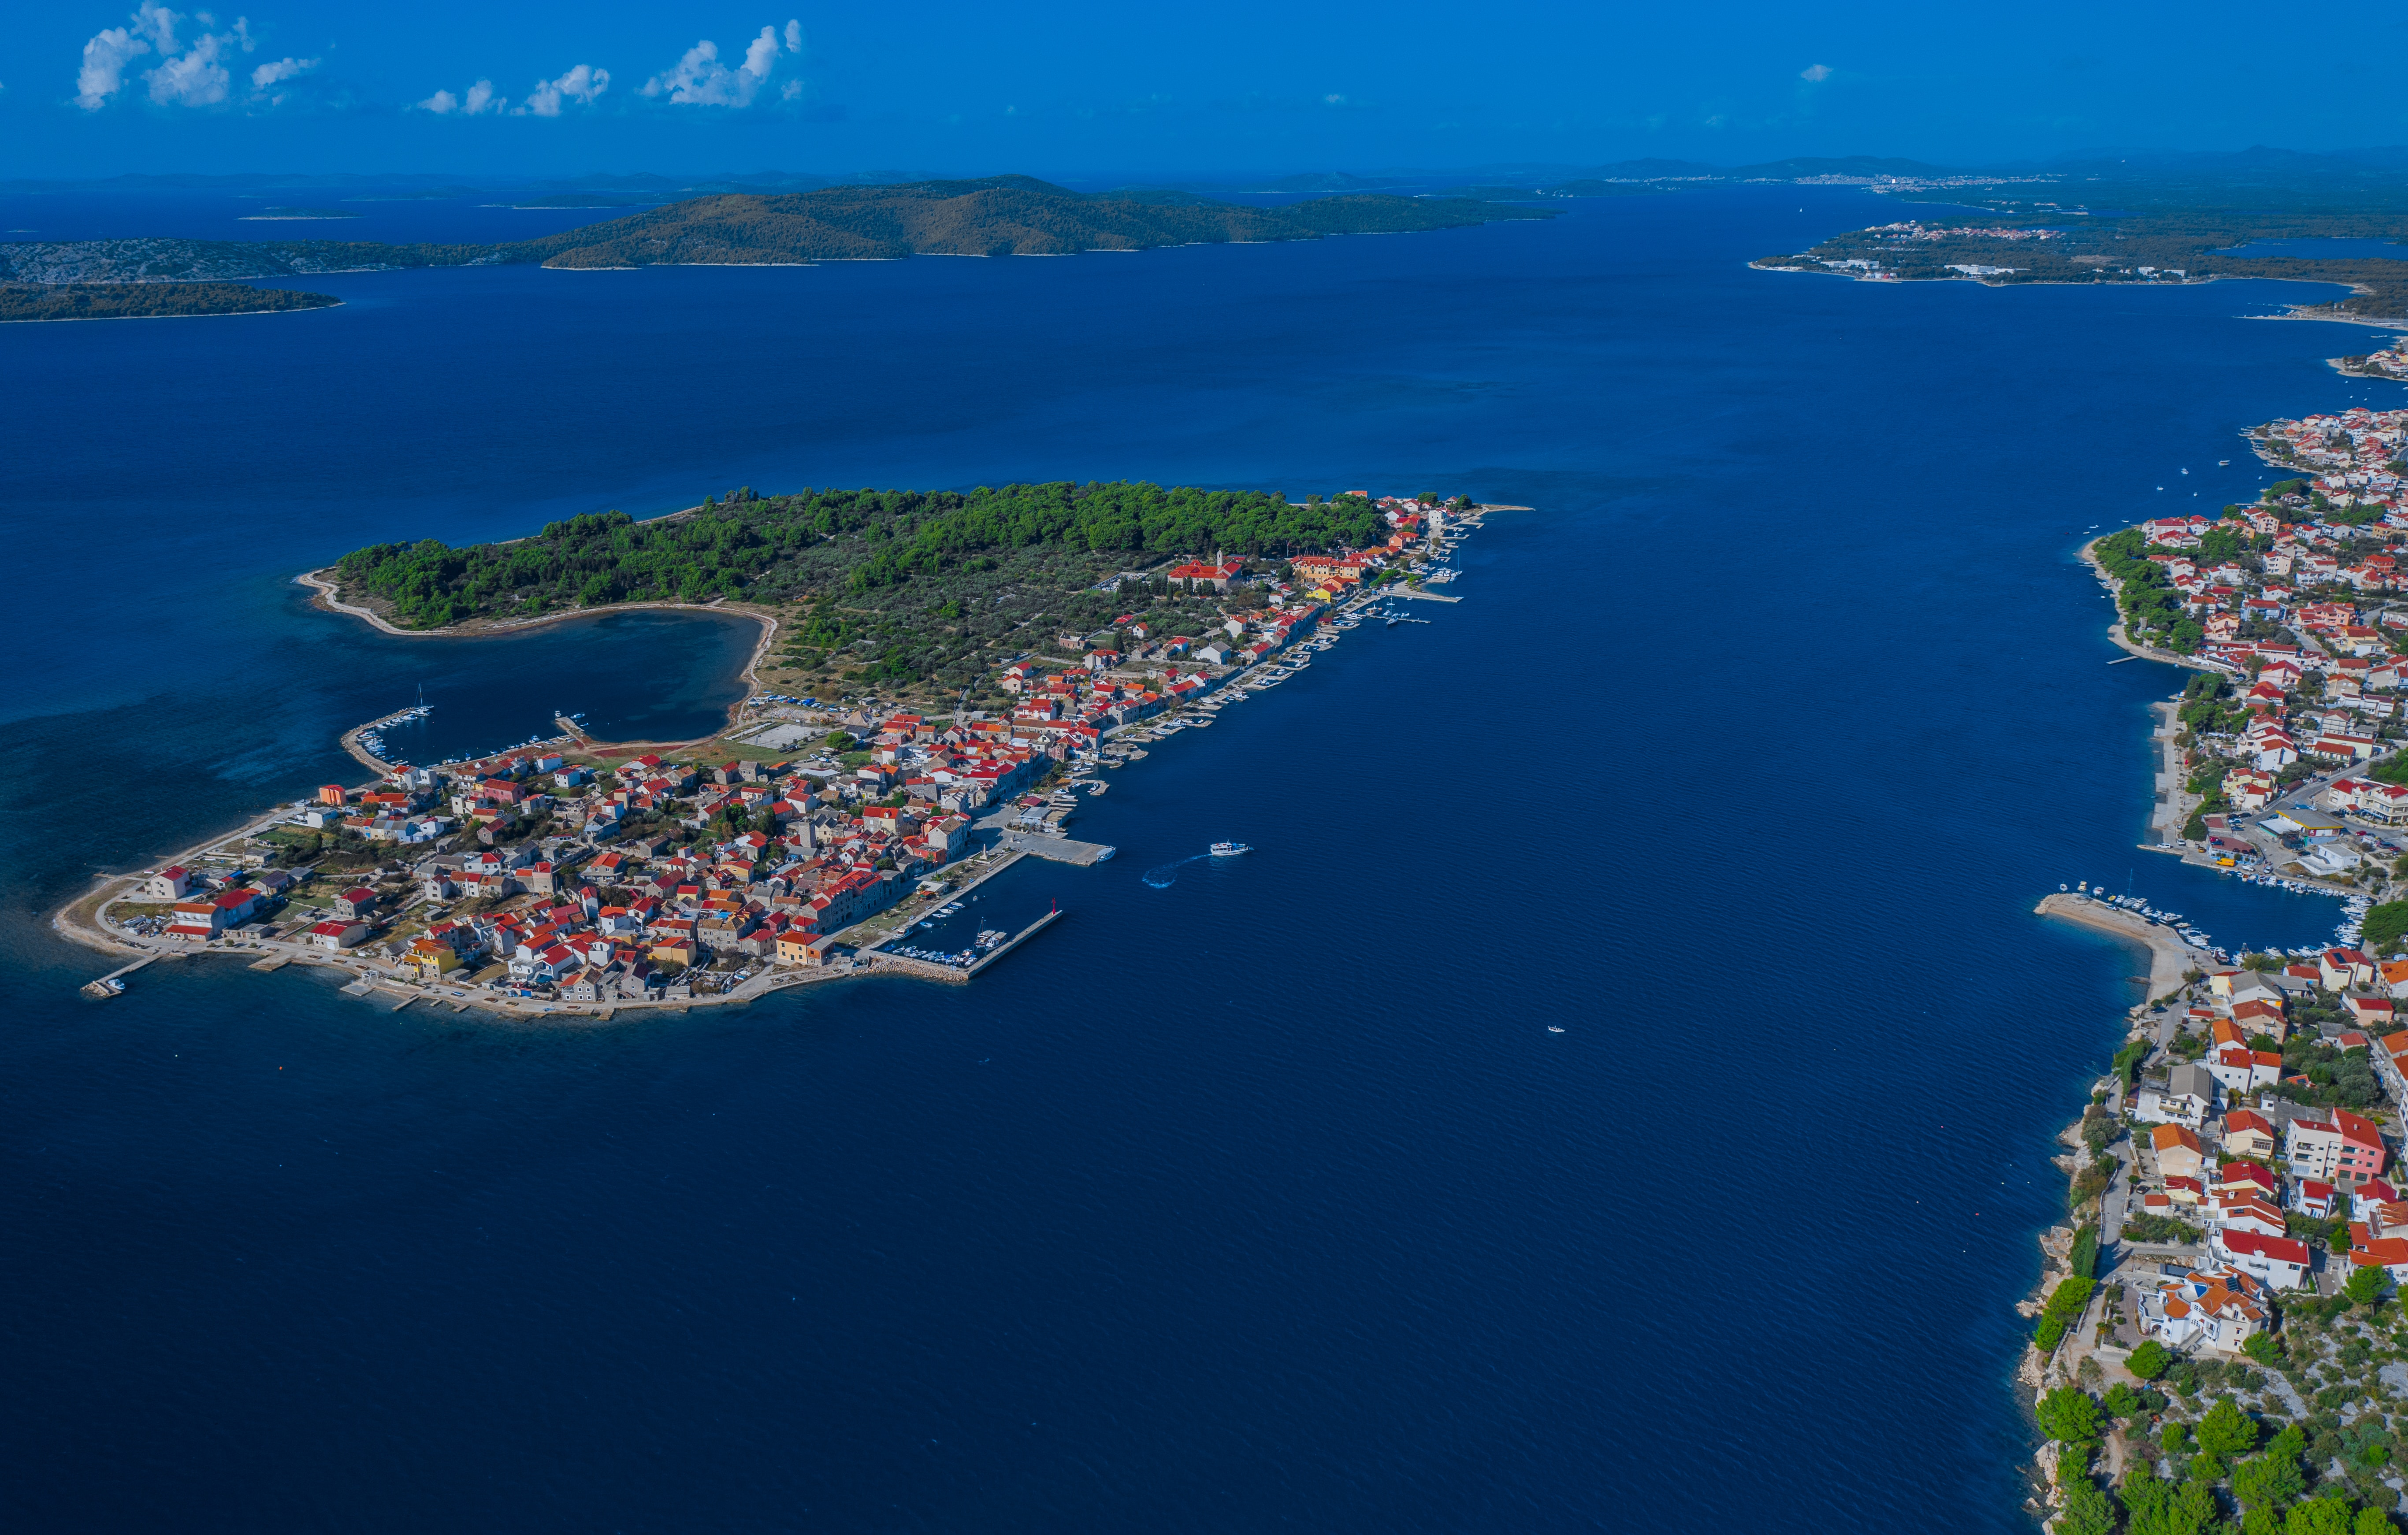 Aerial view of an island in Croatia.